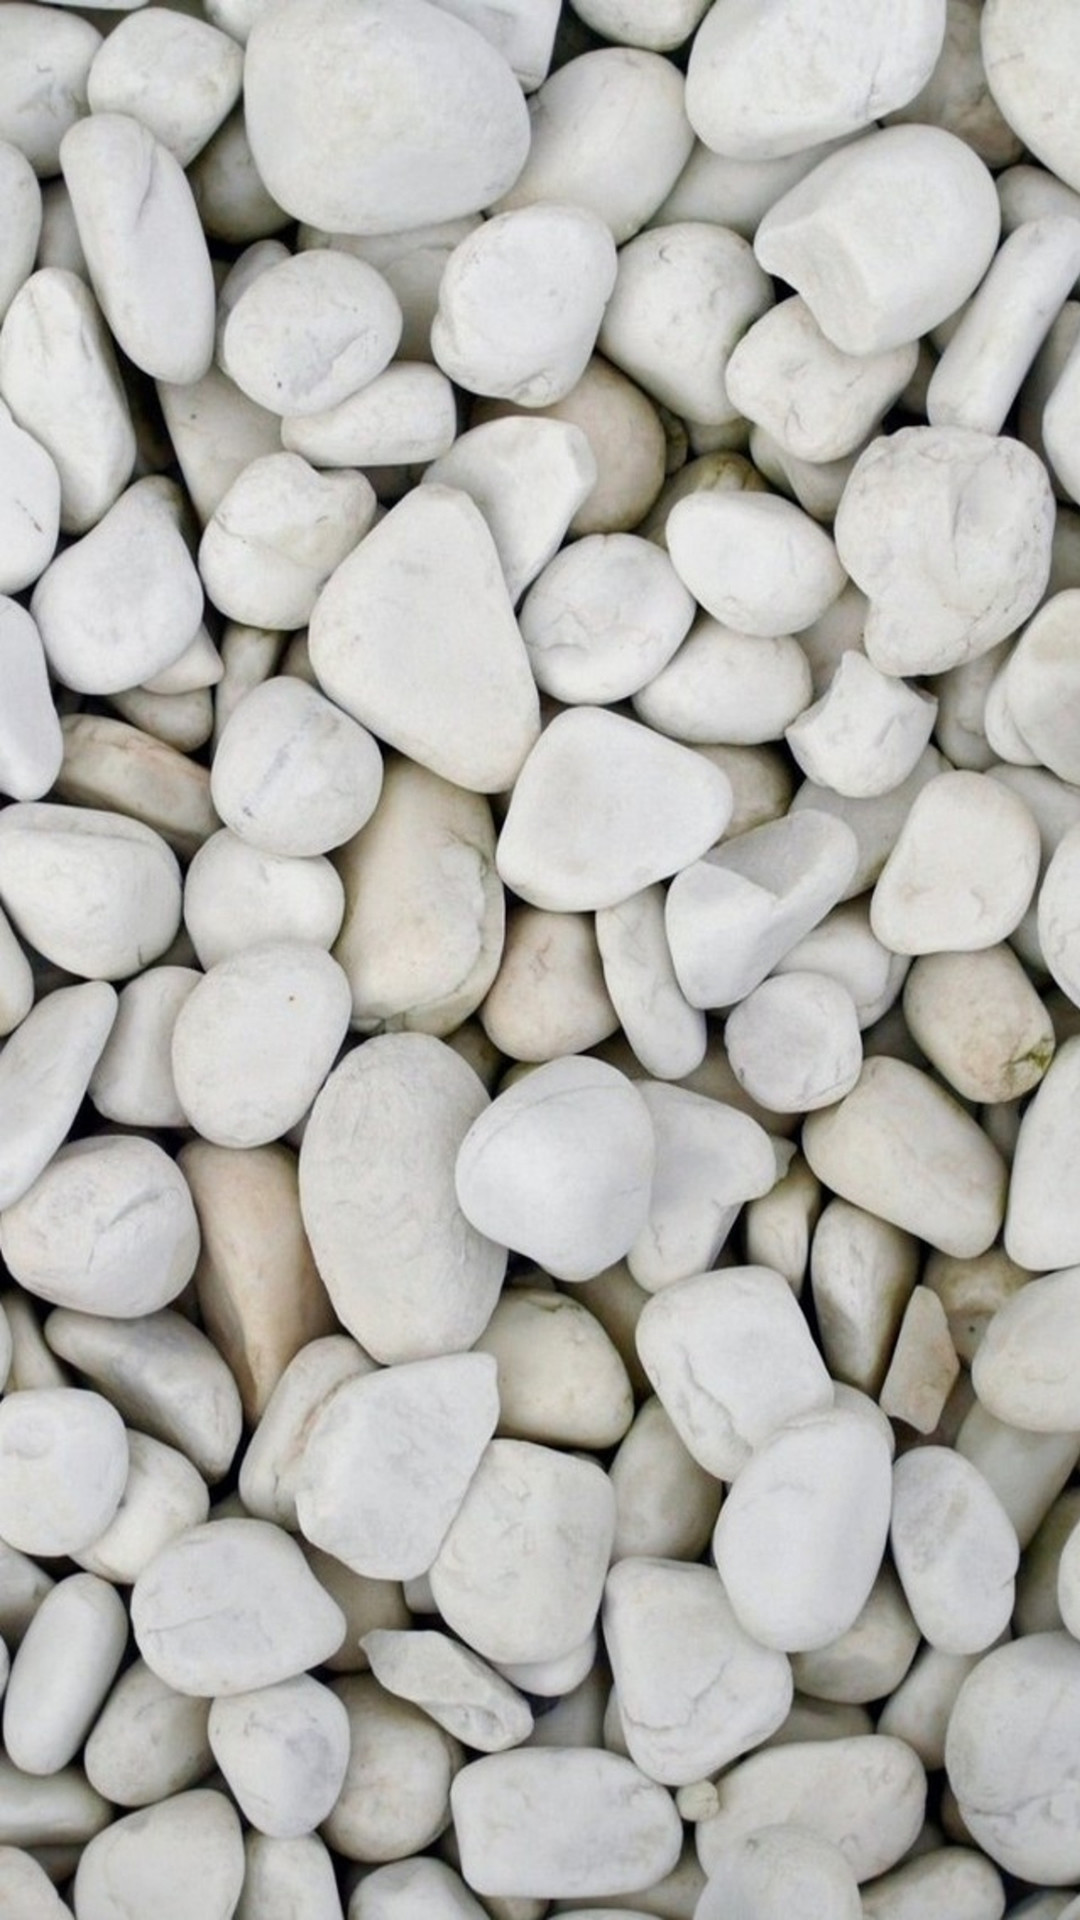 1080x1920 Beach White Pebble Rock Clitter Background iPhone 6 wallpaper